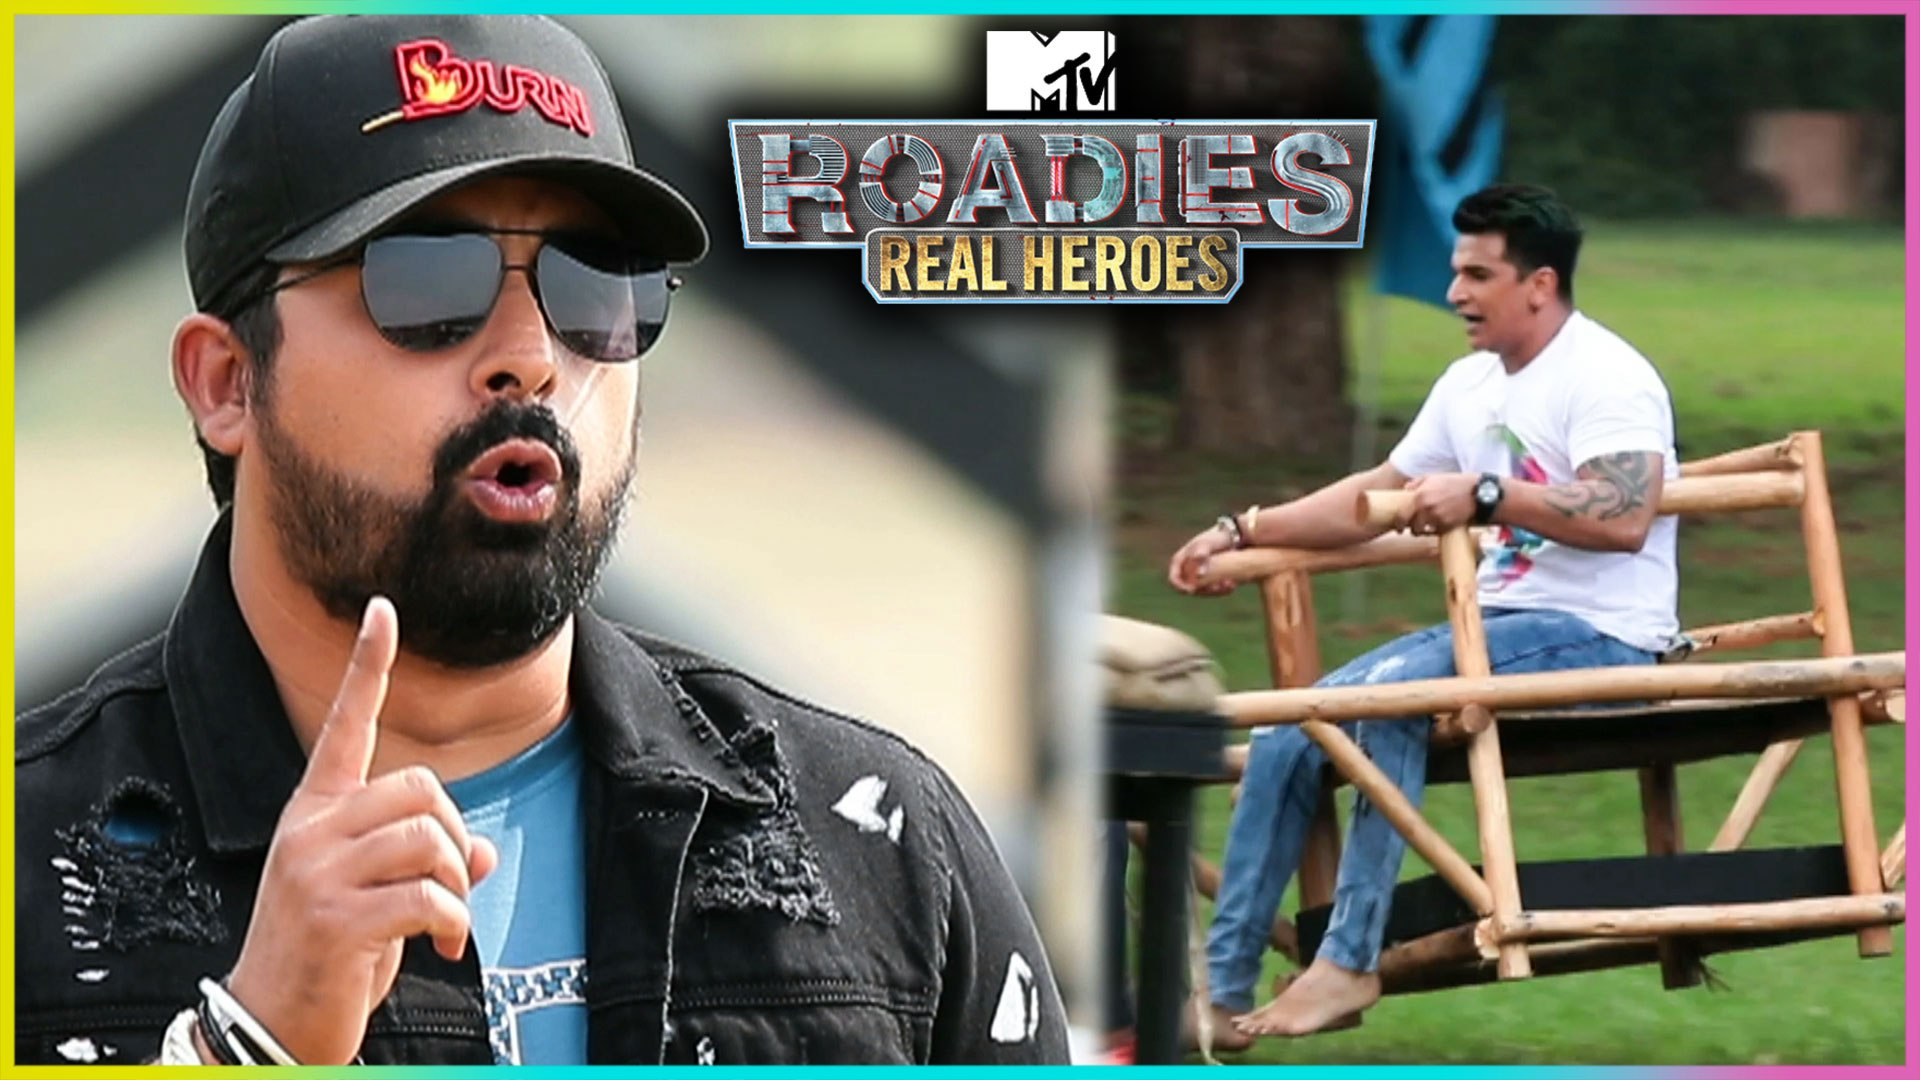 MTV Roadies Real Heroes Gang Leaders UGLY Fight | ACTUAL Journey Starts